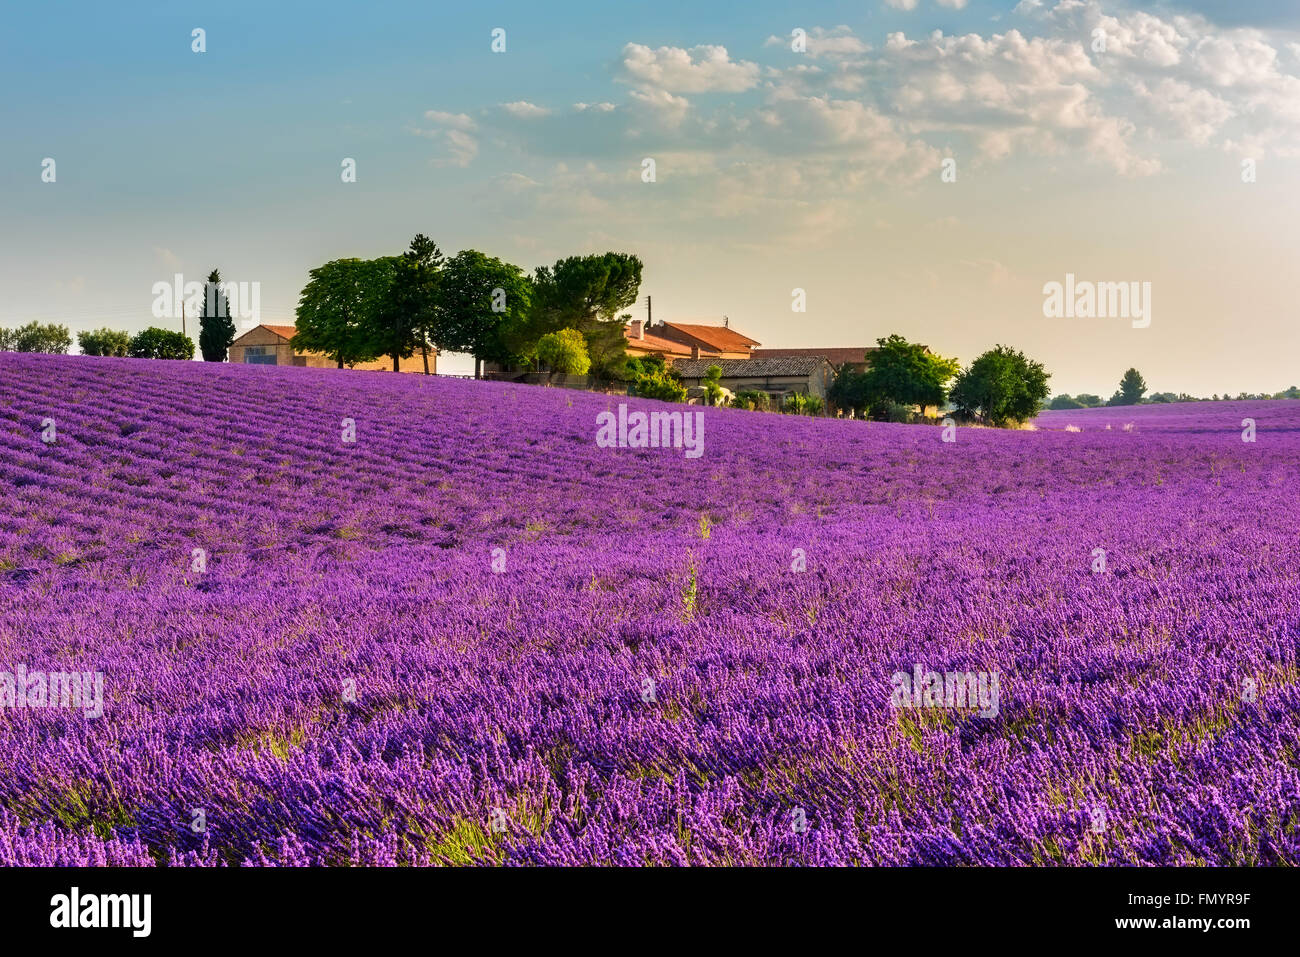 Gentle sunrise over the endless lavender fields and farm in Provence, France Stock Photo